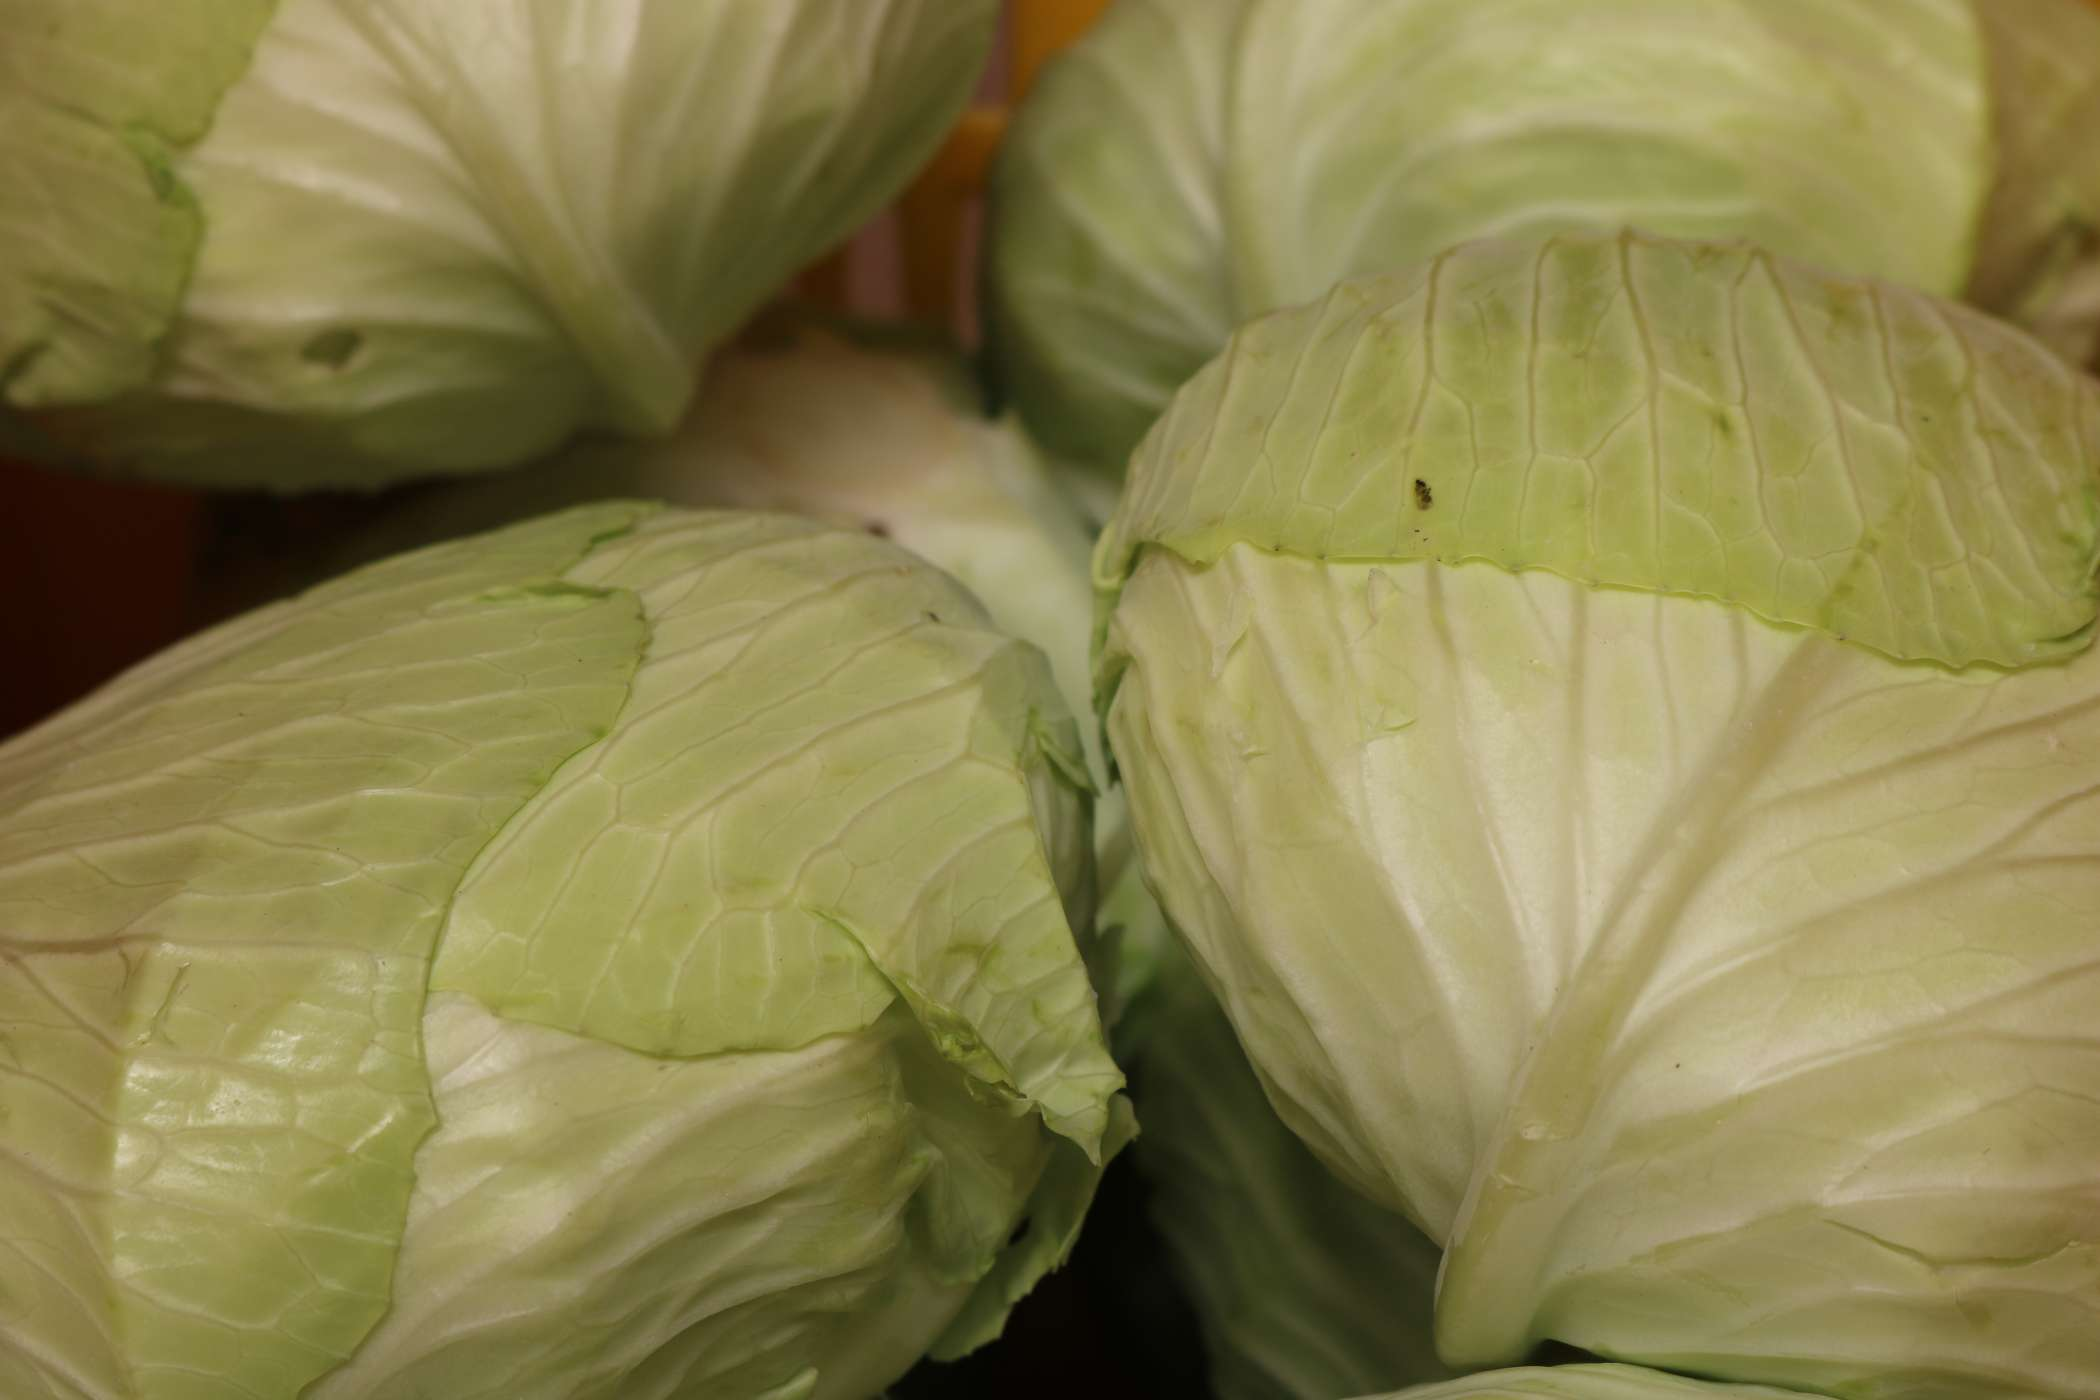 Our Pesticide Residue Test Result for Cabbage is Here